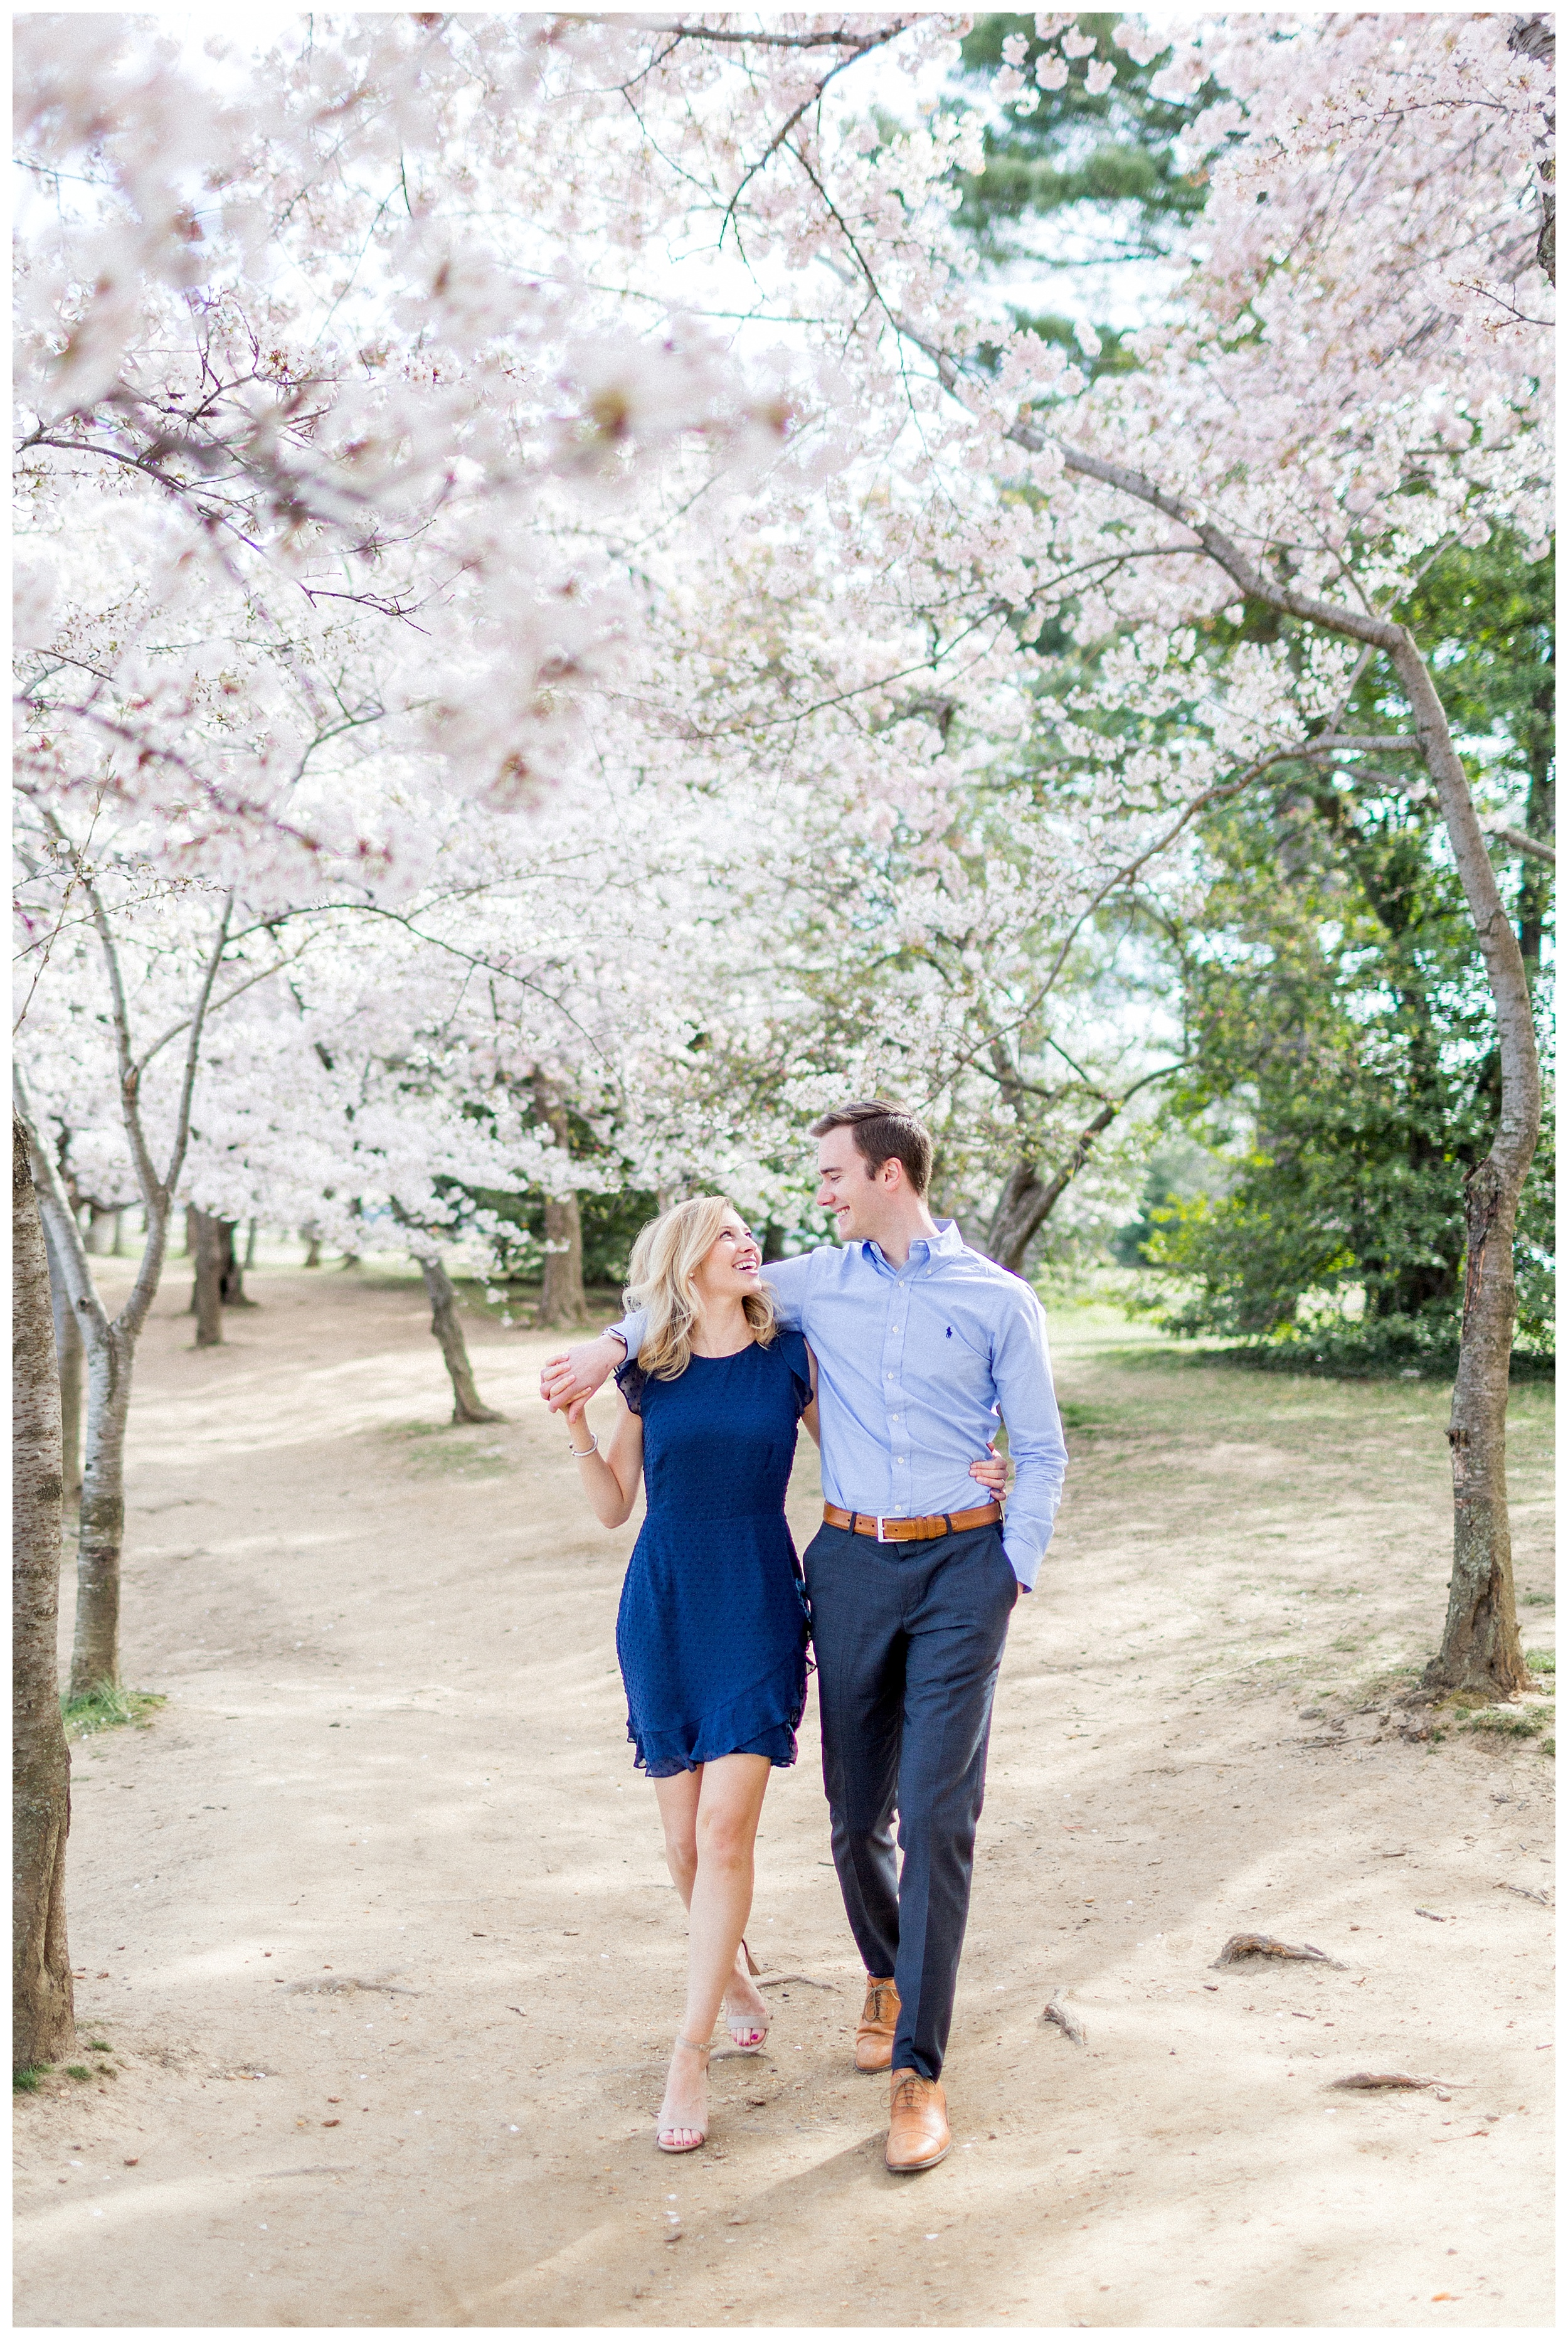 District of Columbia Cherry Blossom Engagement Session_0033.jpg